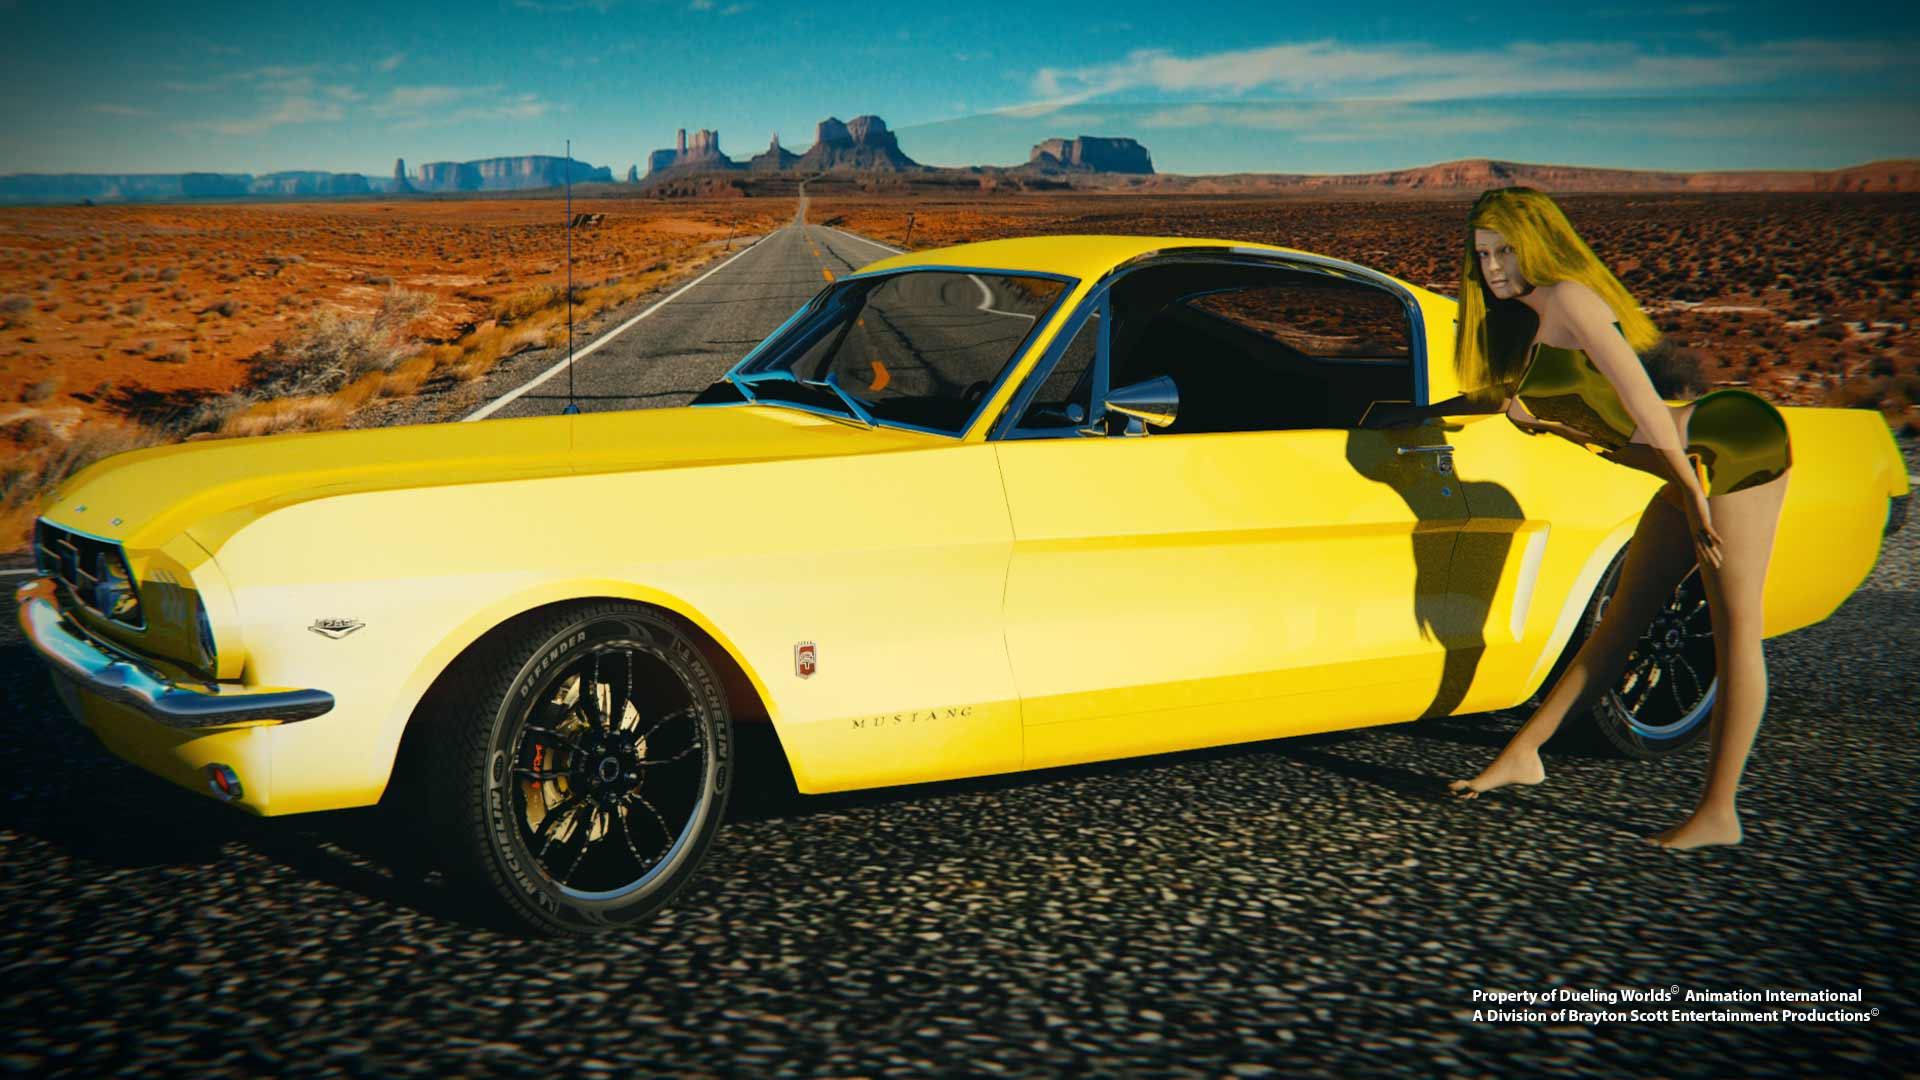 Image of Dueling Worlds© Render Cloud- Dueling Worlds© International Mustang Sally in front of Canary Yellow 1965 Mustang GT Fastback